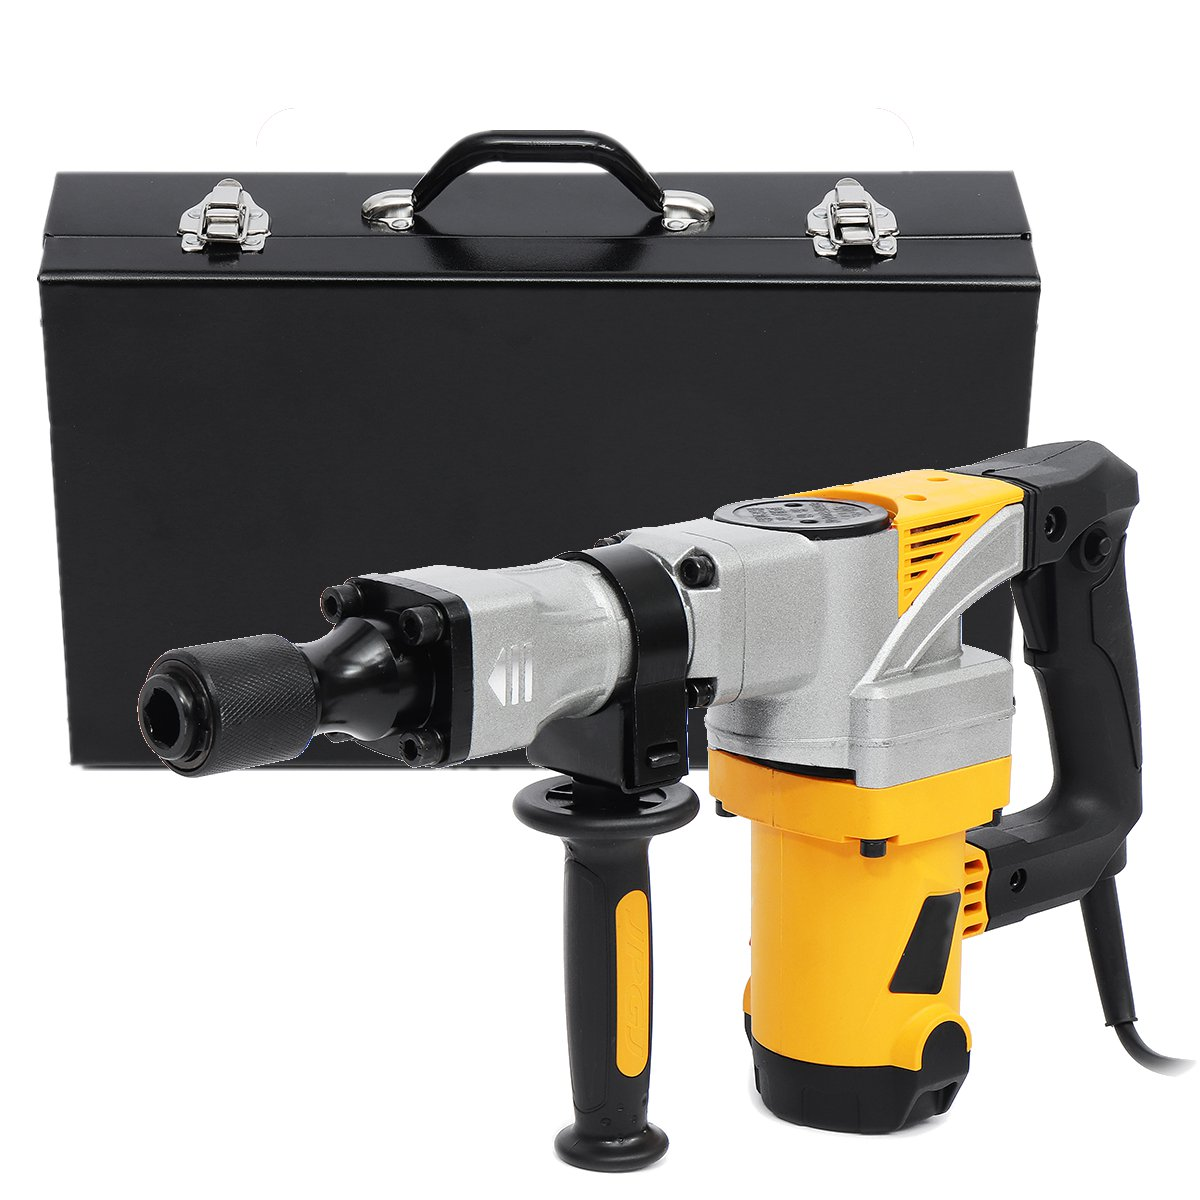 Professional Electric Demolition Hammer 2300W 220V Impact Concrete Drill Breaker Slotting Machine Industrial Power Tools